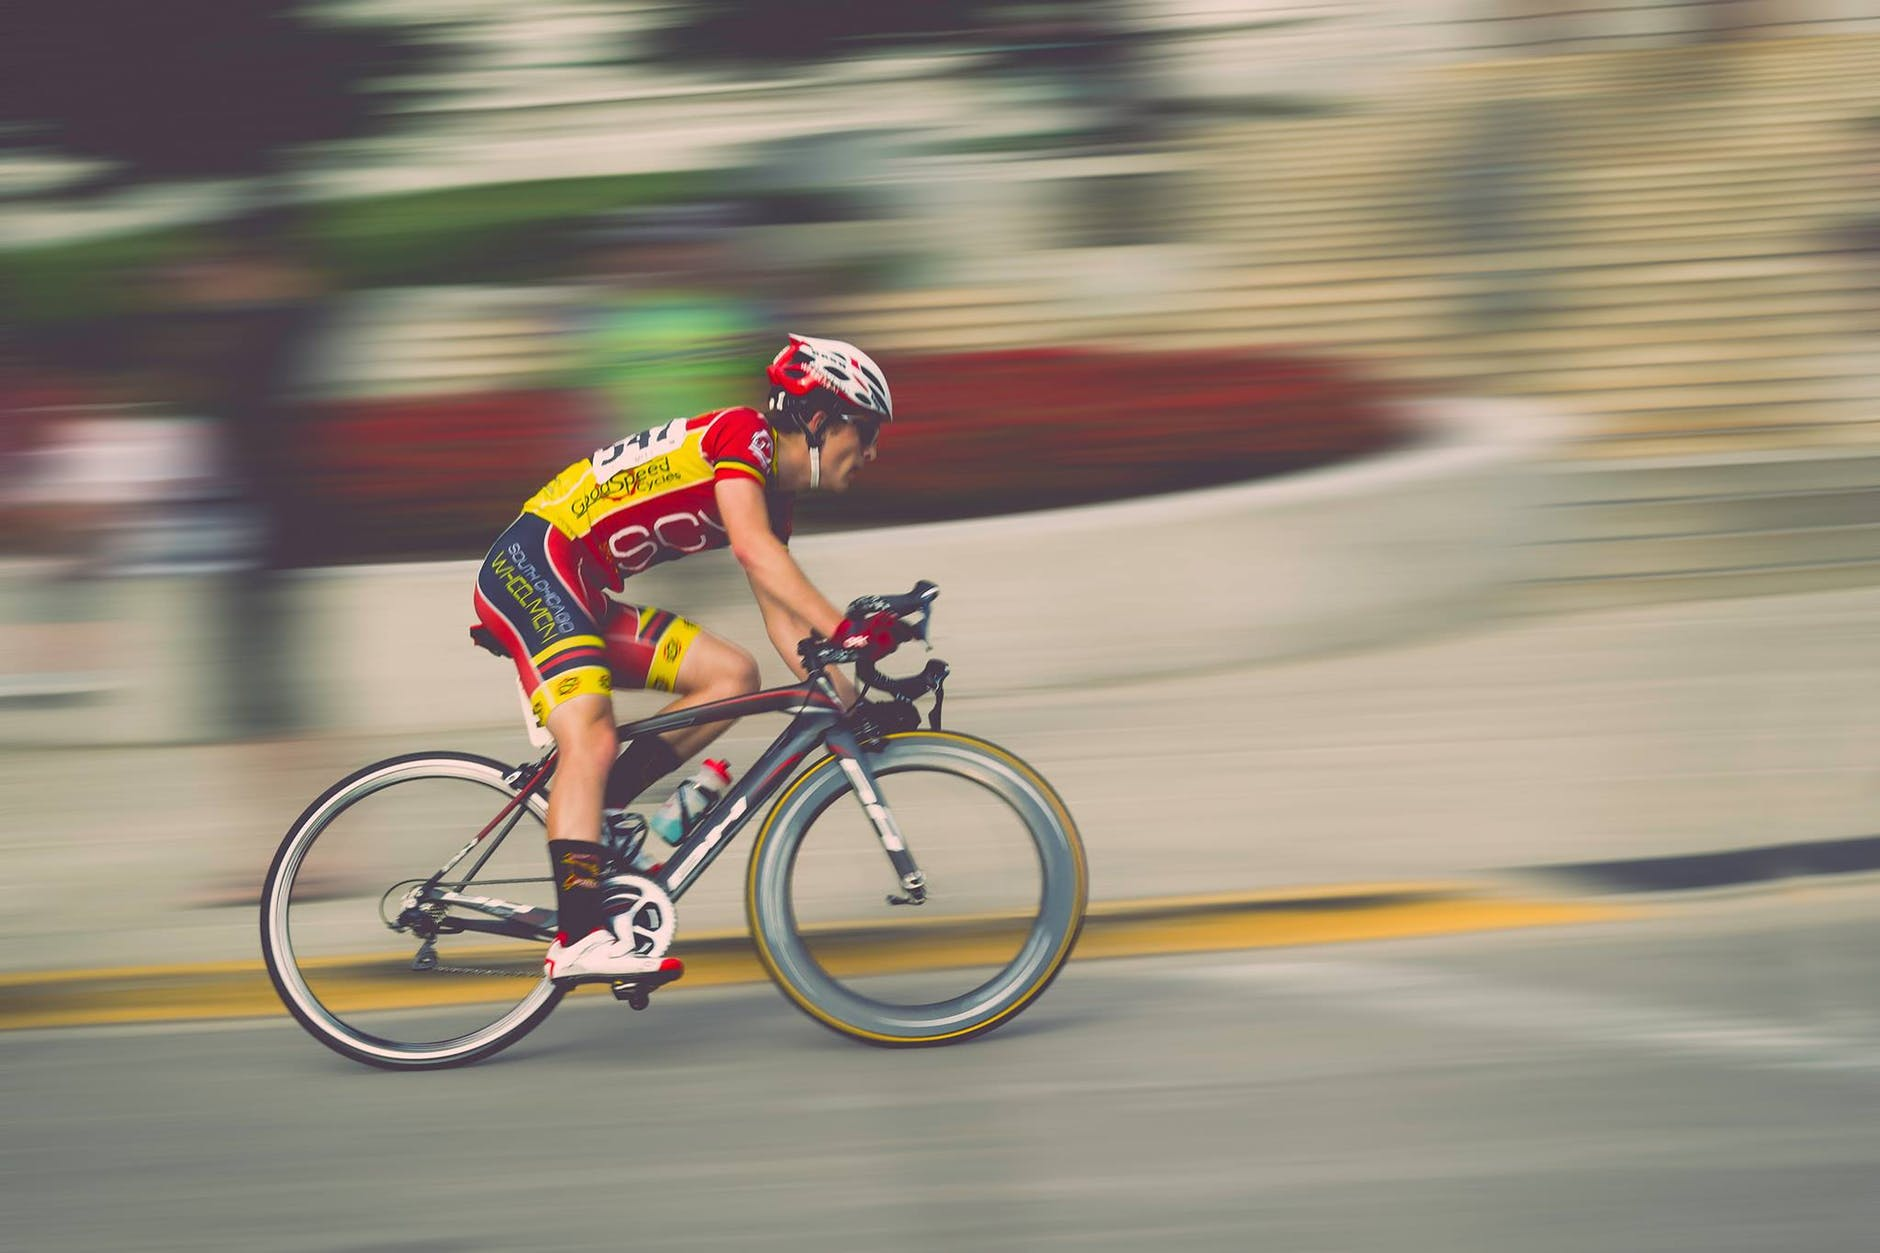 blur bicycle speed bicyclist